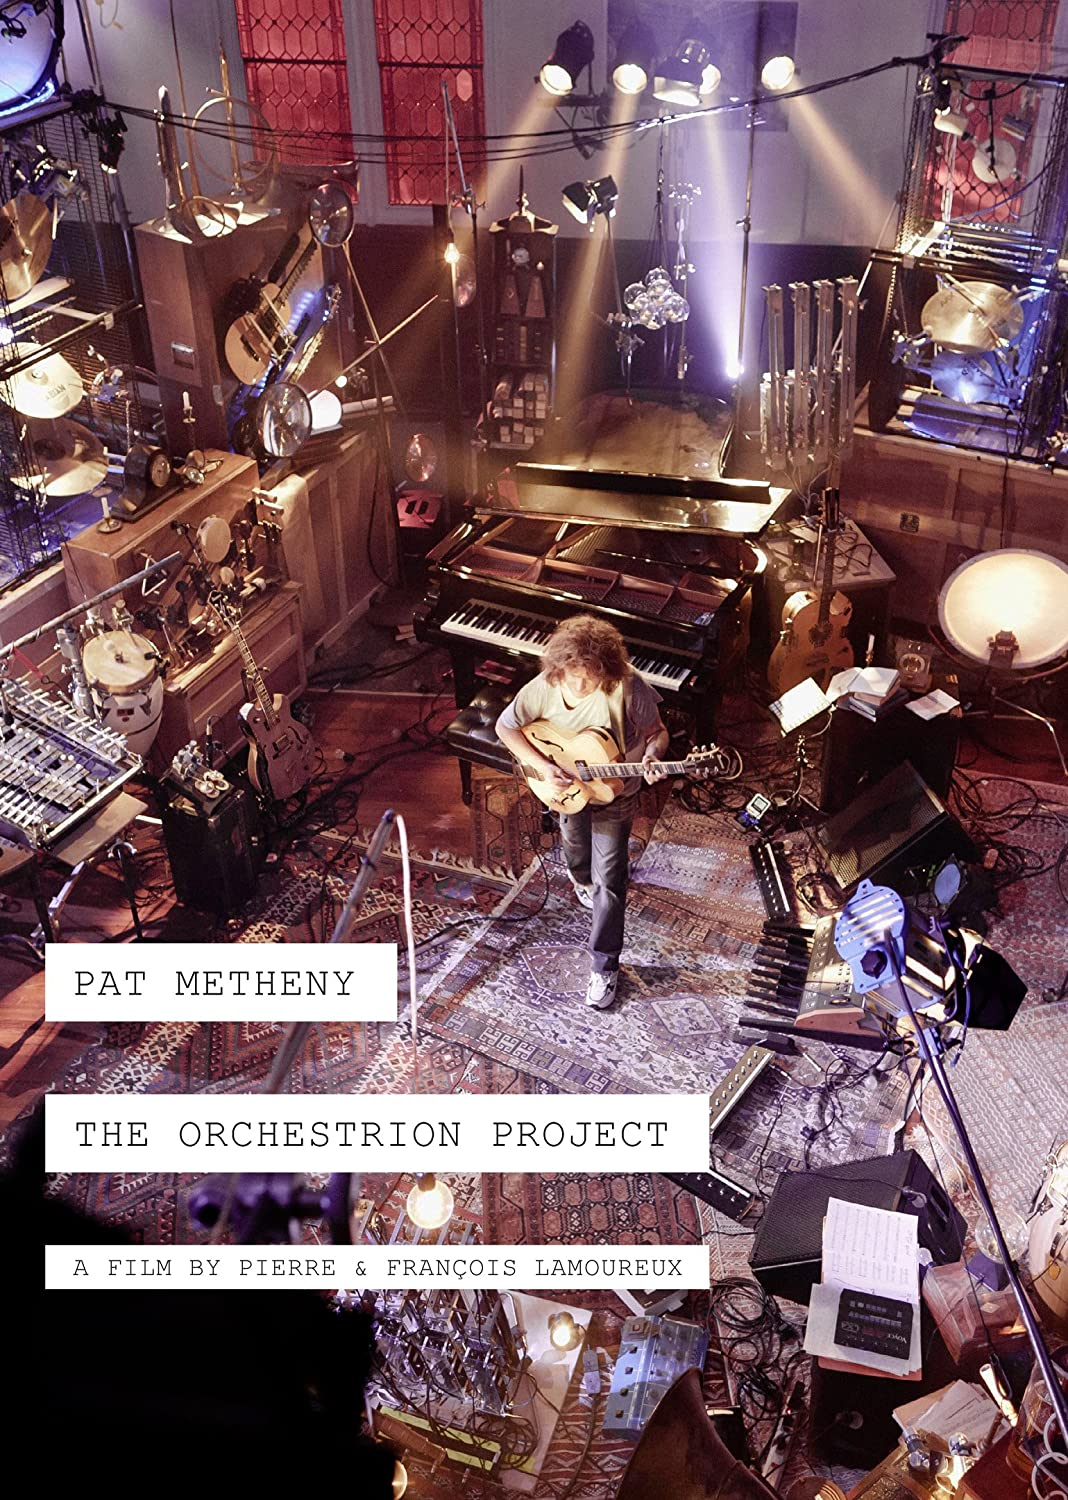 PAT METHENY THE ORCHESTRION PROJECT DVD